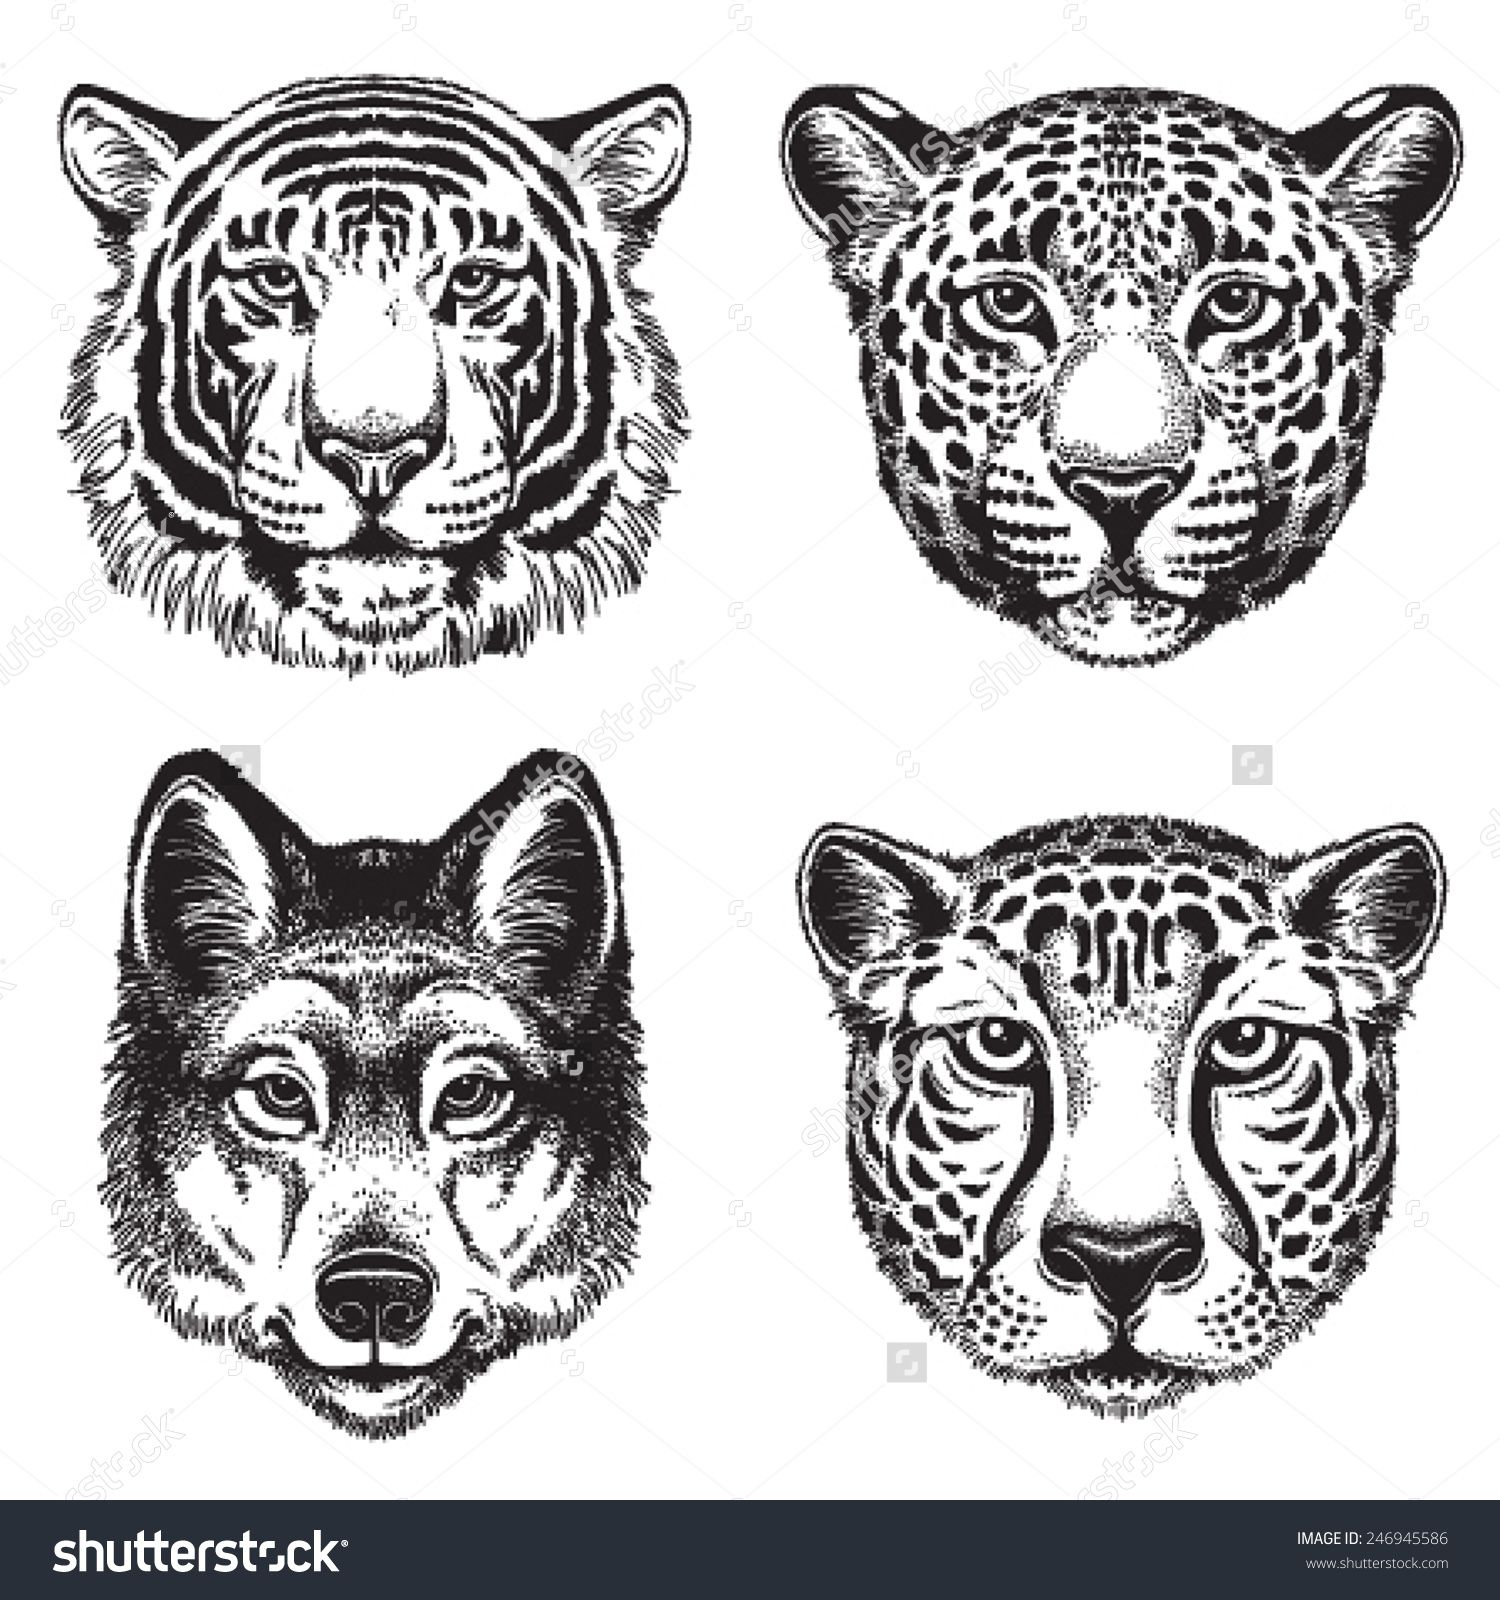 Black and white vector line drawings of wild animal faces cheetah leopard tiger and wolf